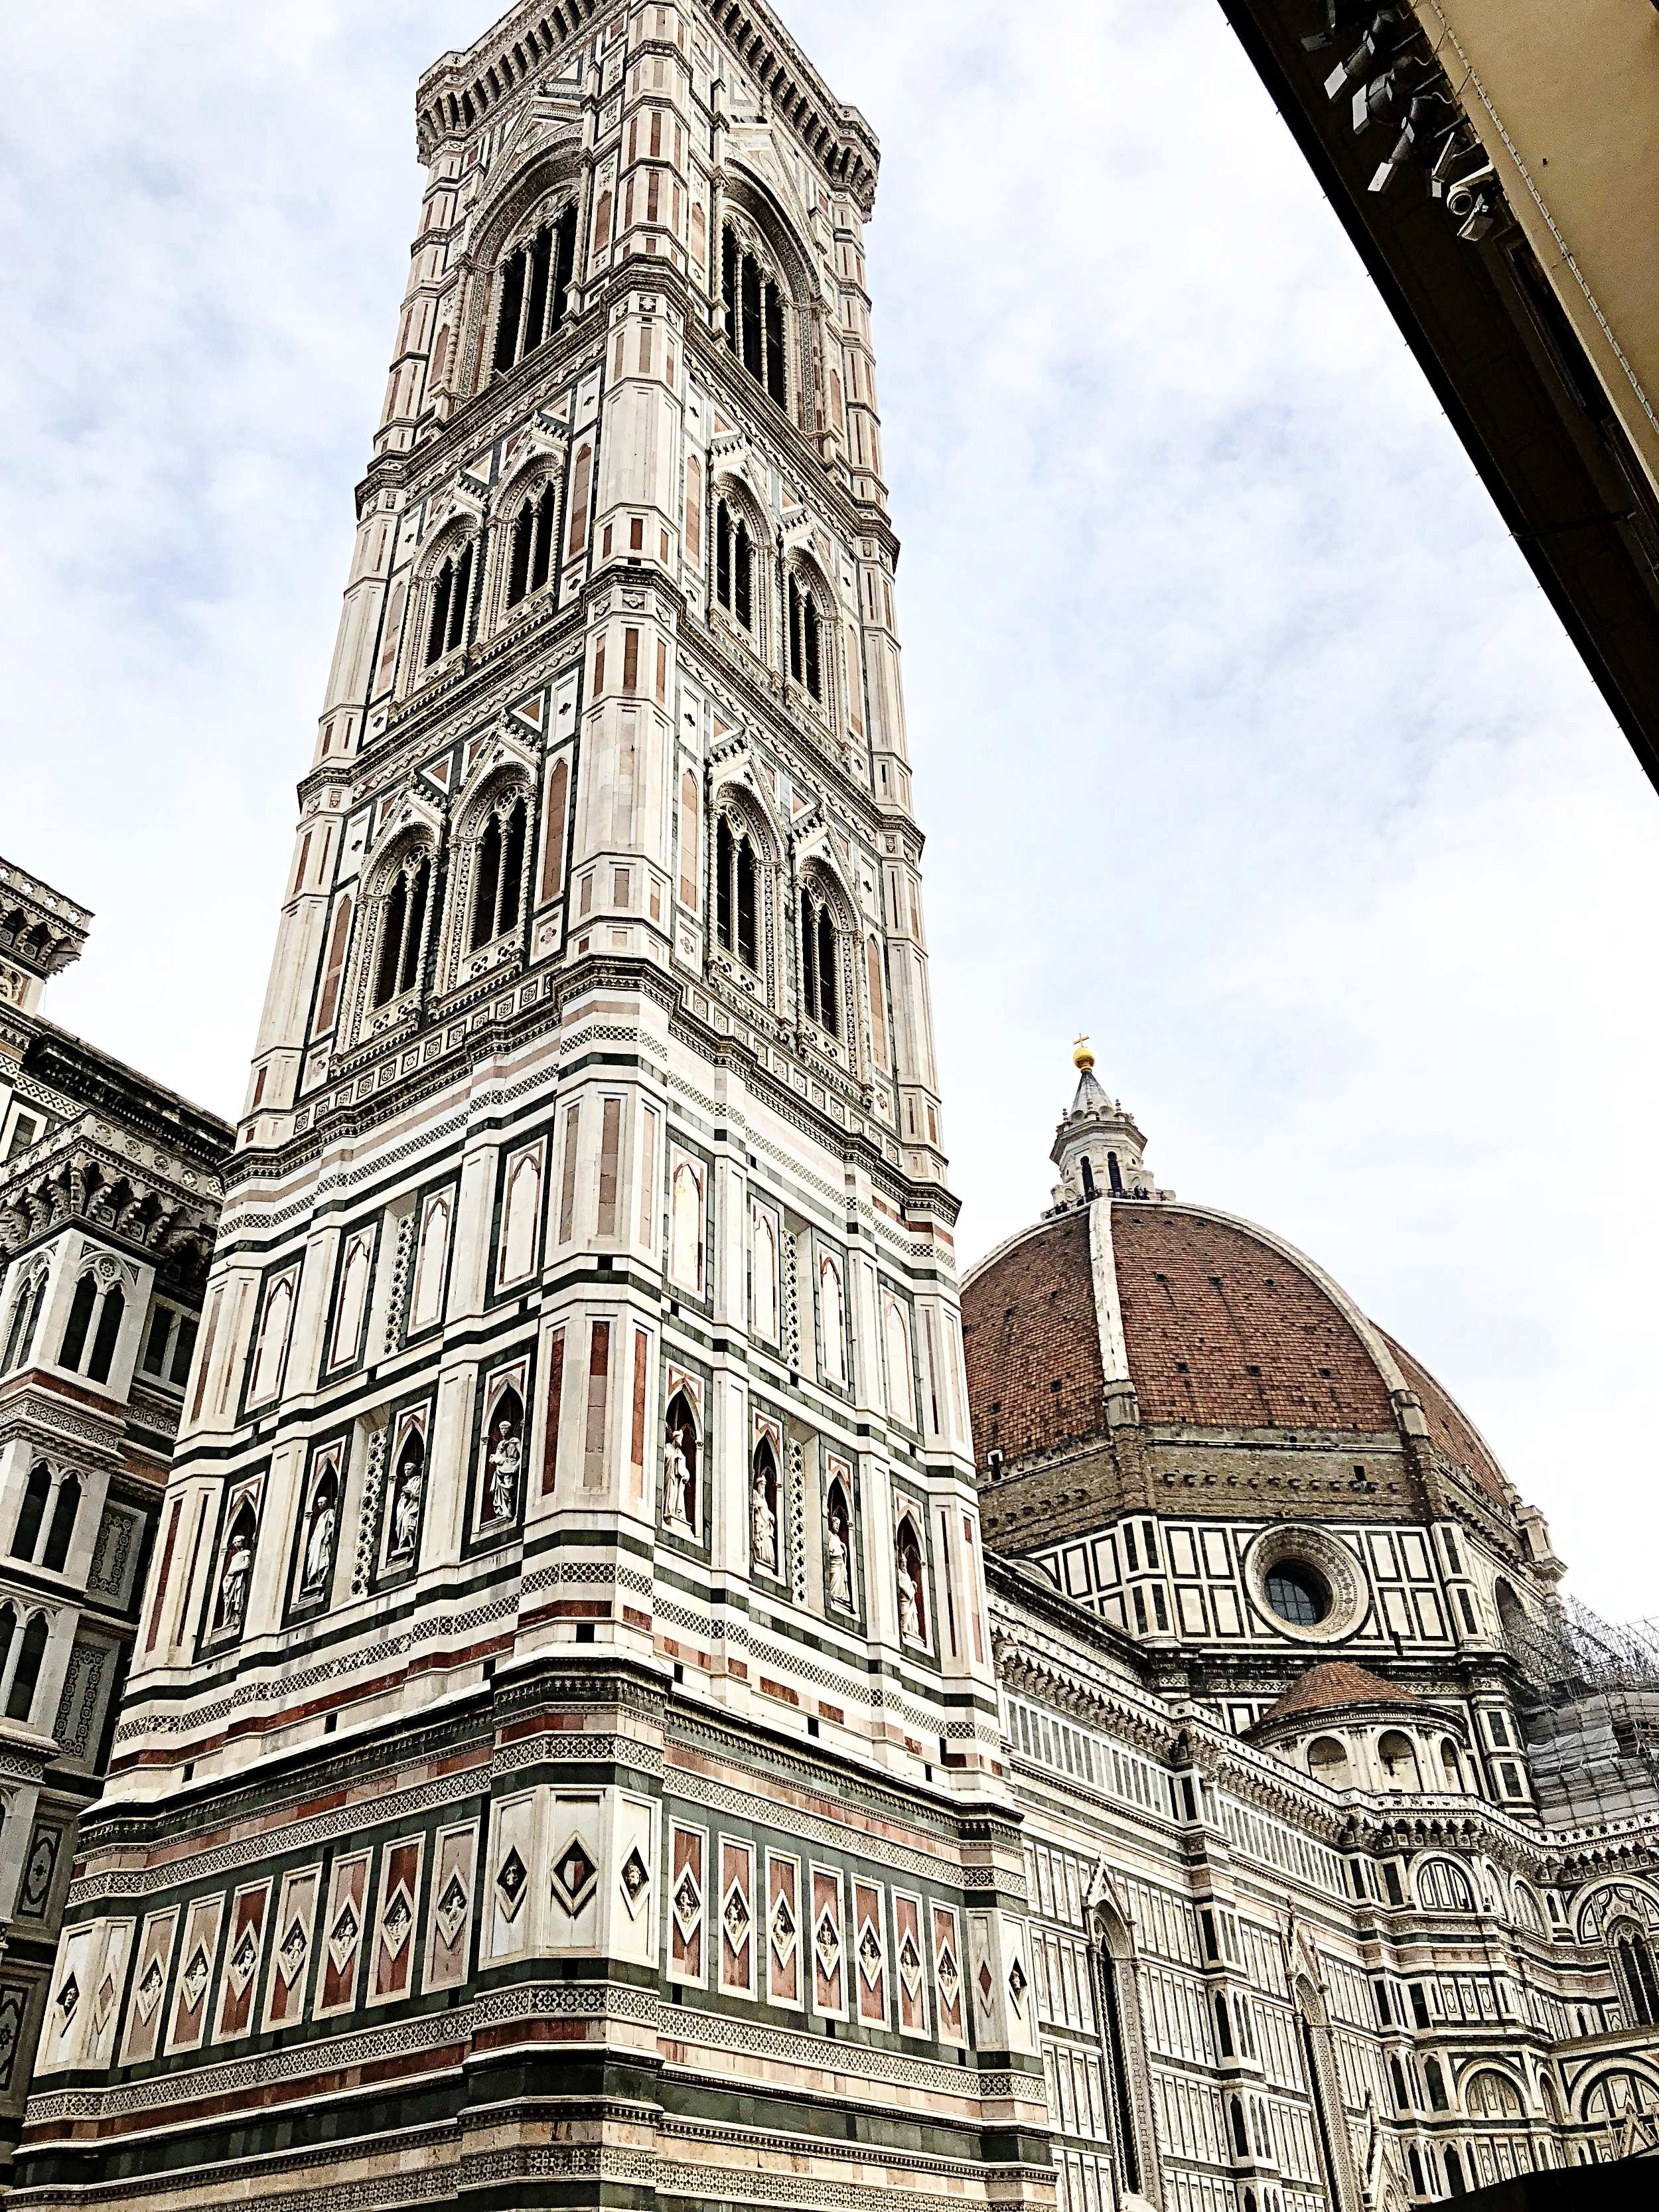 The Bell Tower at the Cathedral di Santa Maria del Fiore.